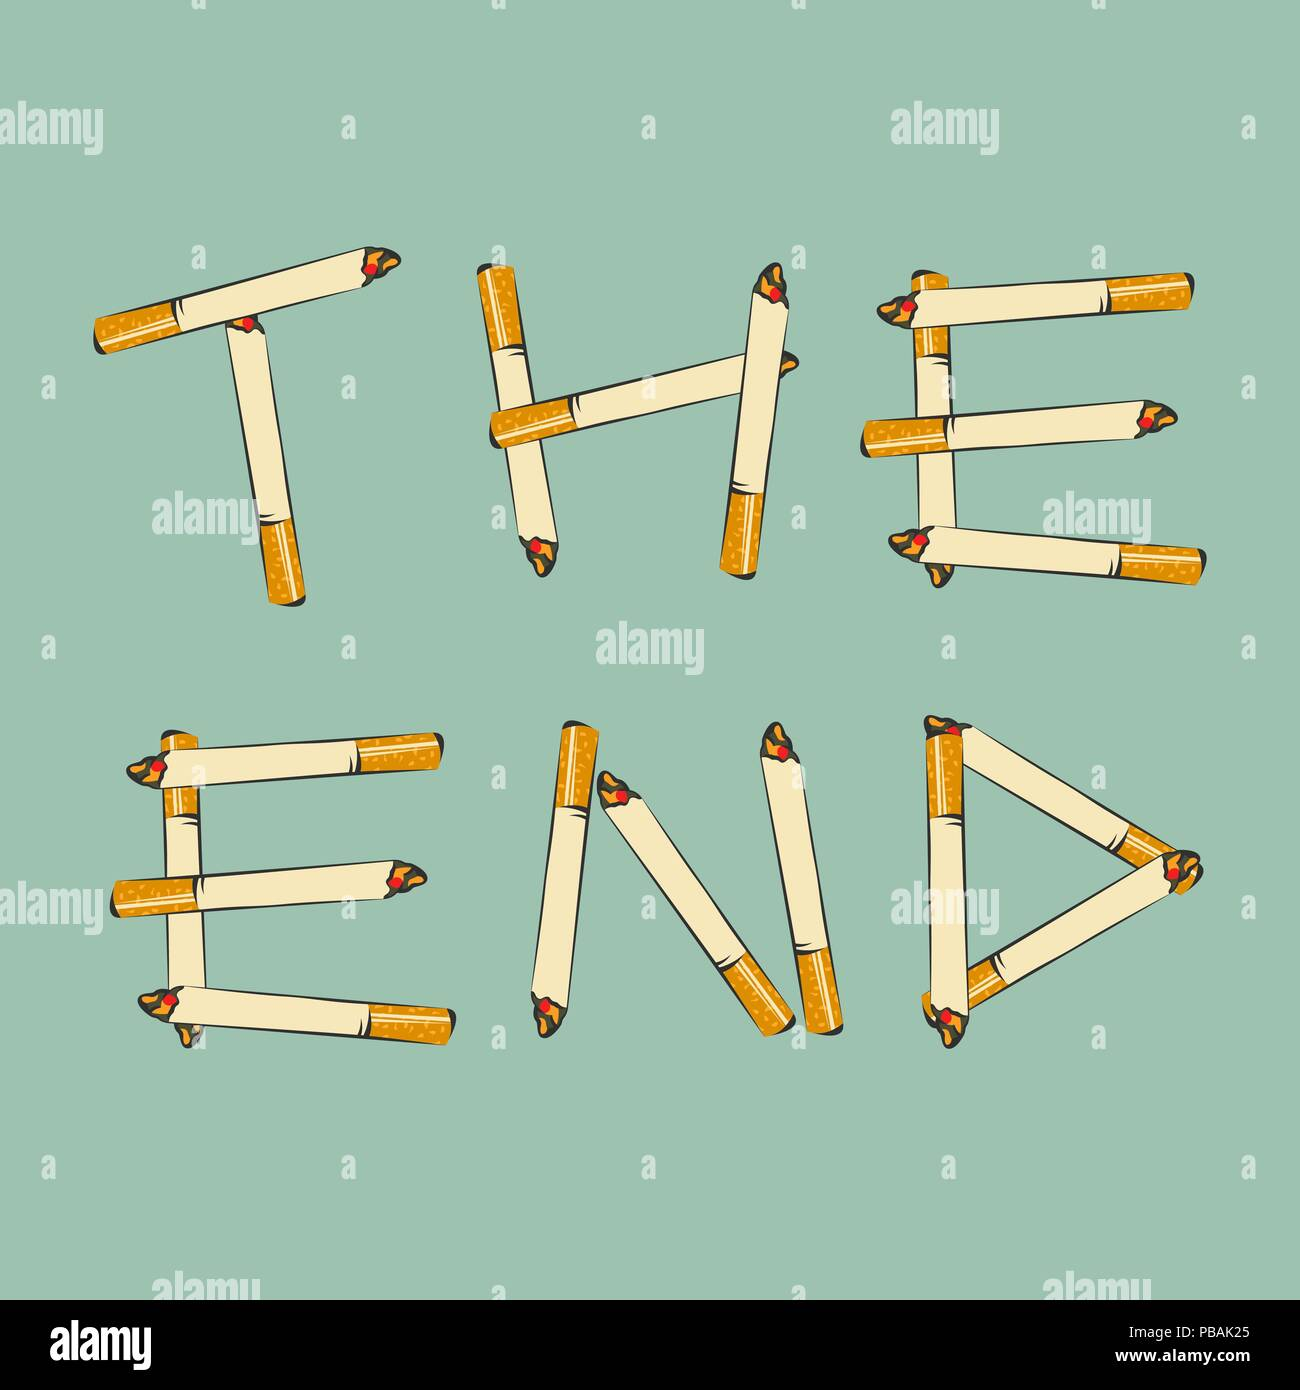 What are cigarettes made of? 68